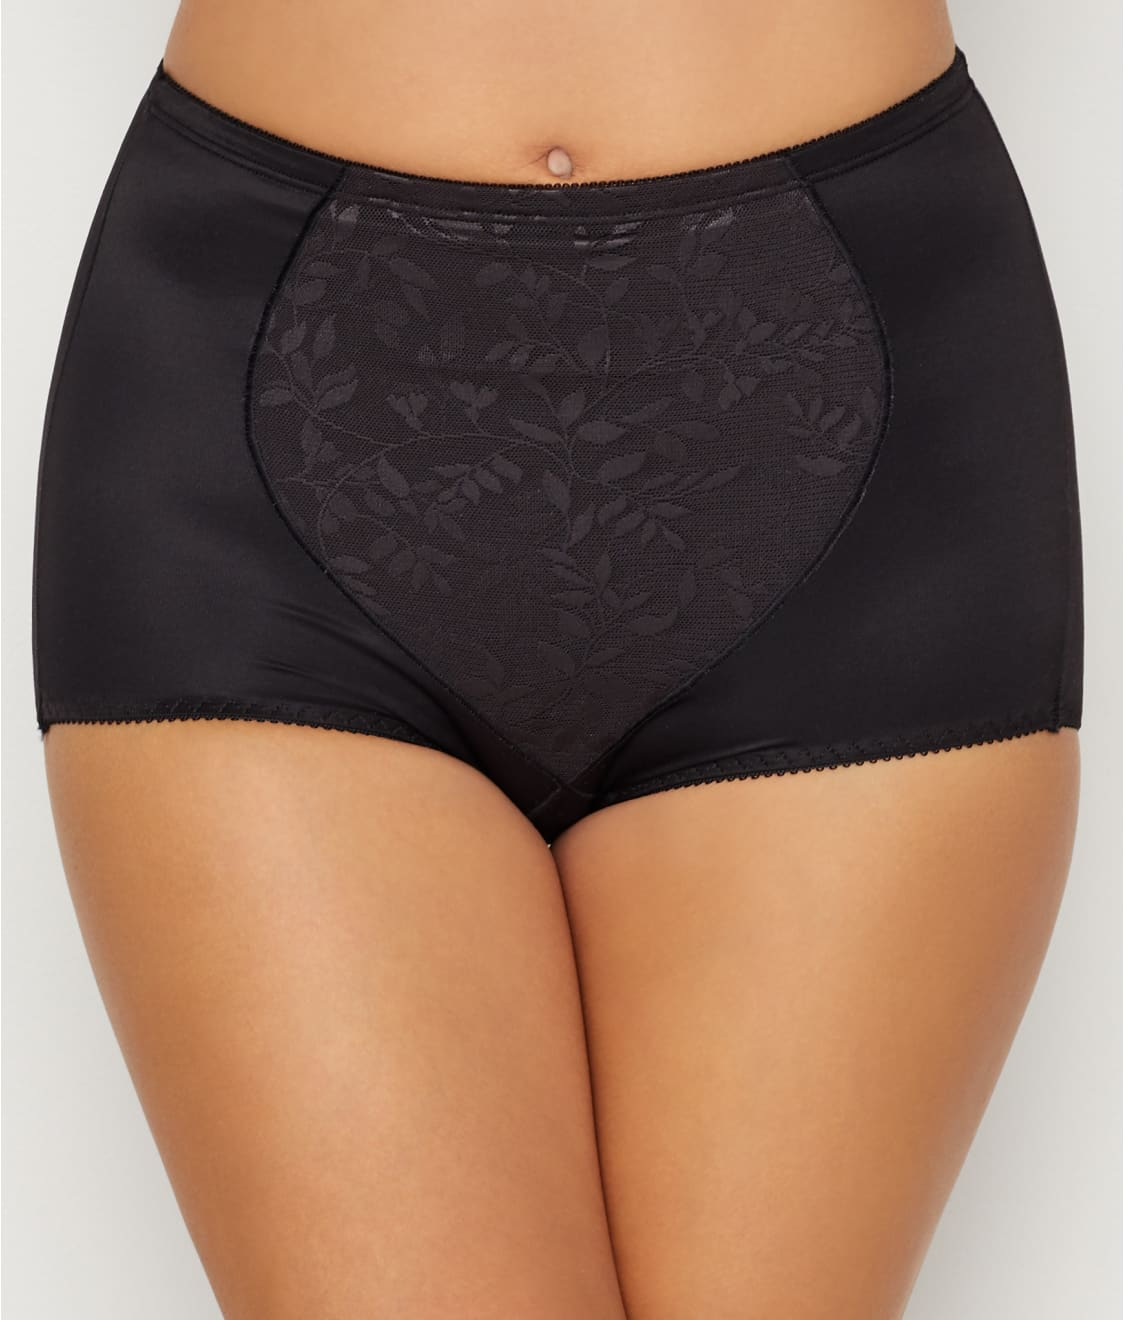 737c8fa31d See Tummy Panel Firm Control Brief 2-Pack in Jacquard Black